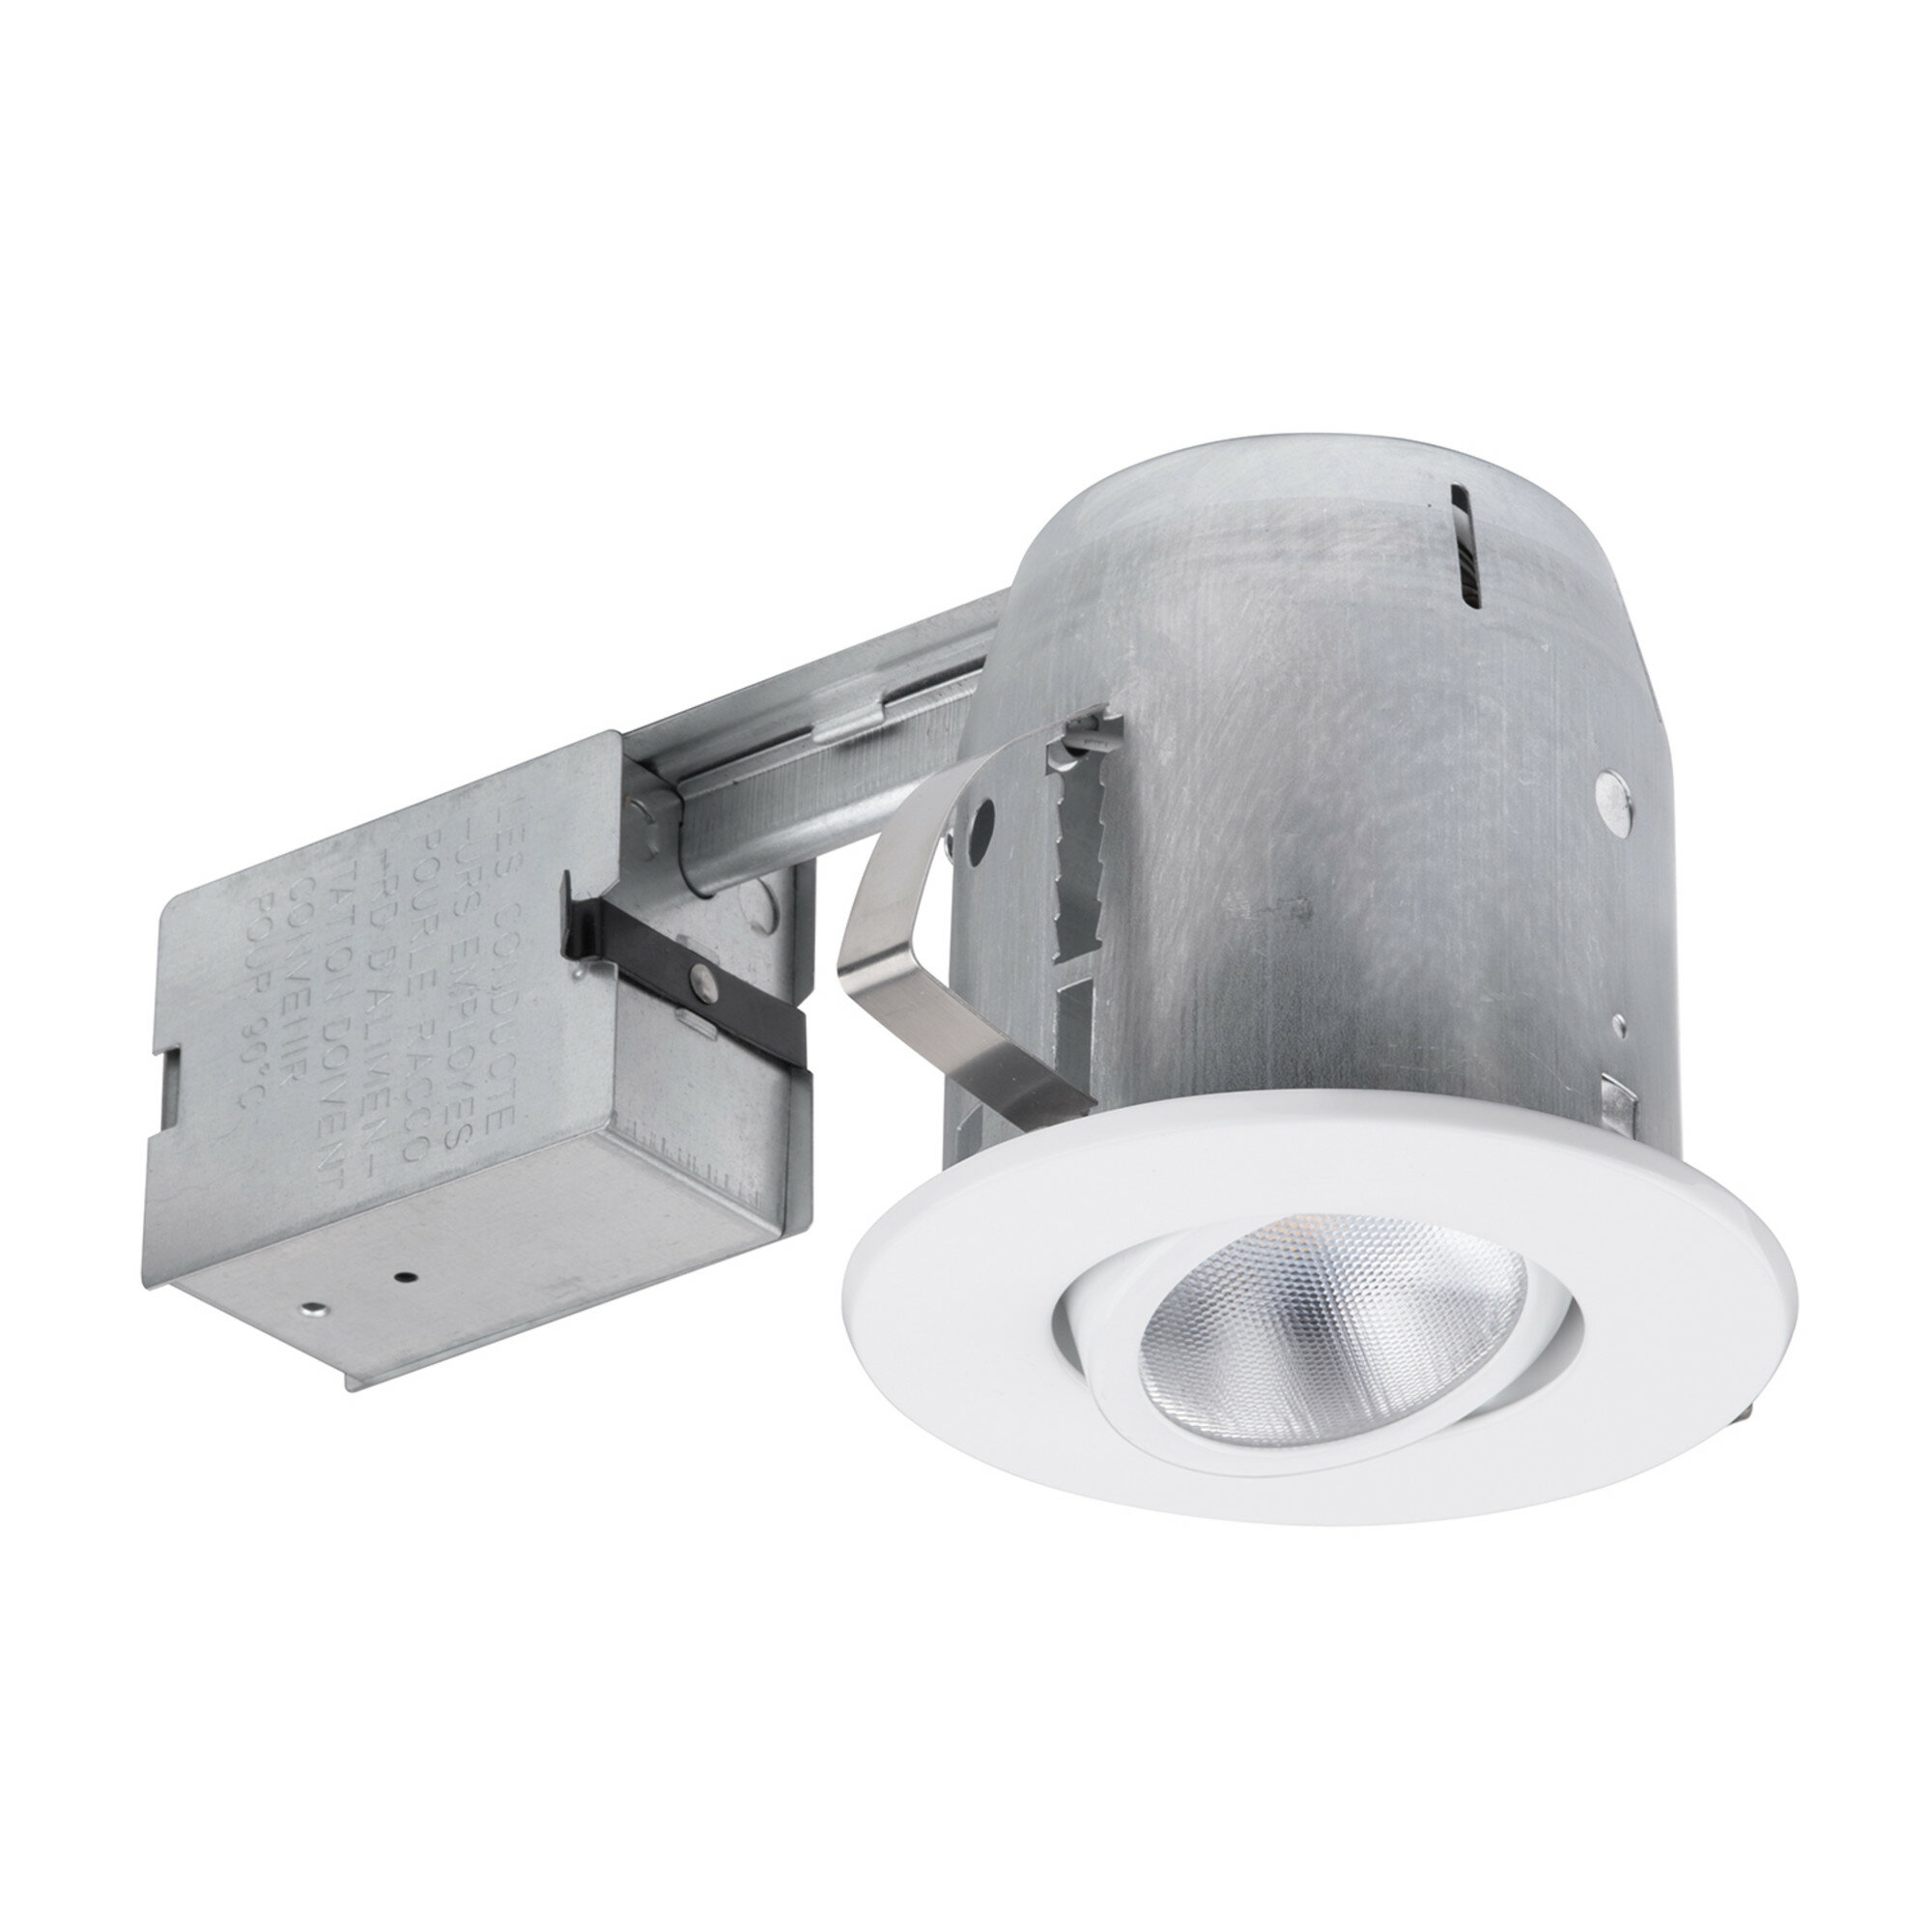 90746 Swivel Round Trim 4 Recessed Lighting Kit